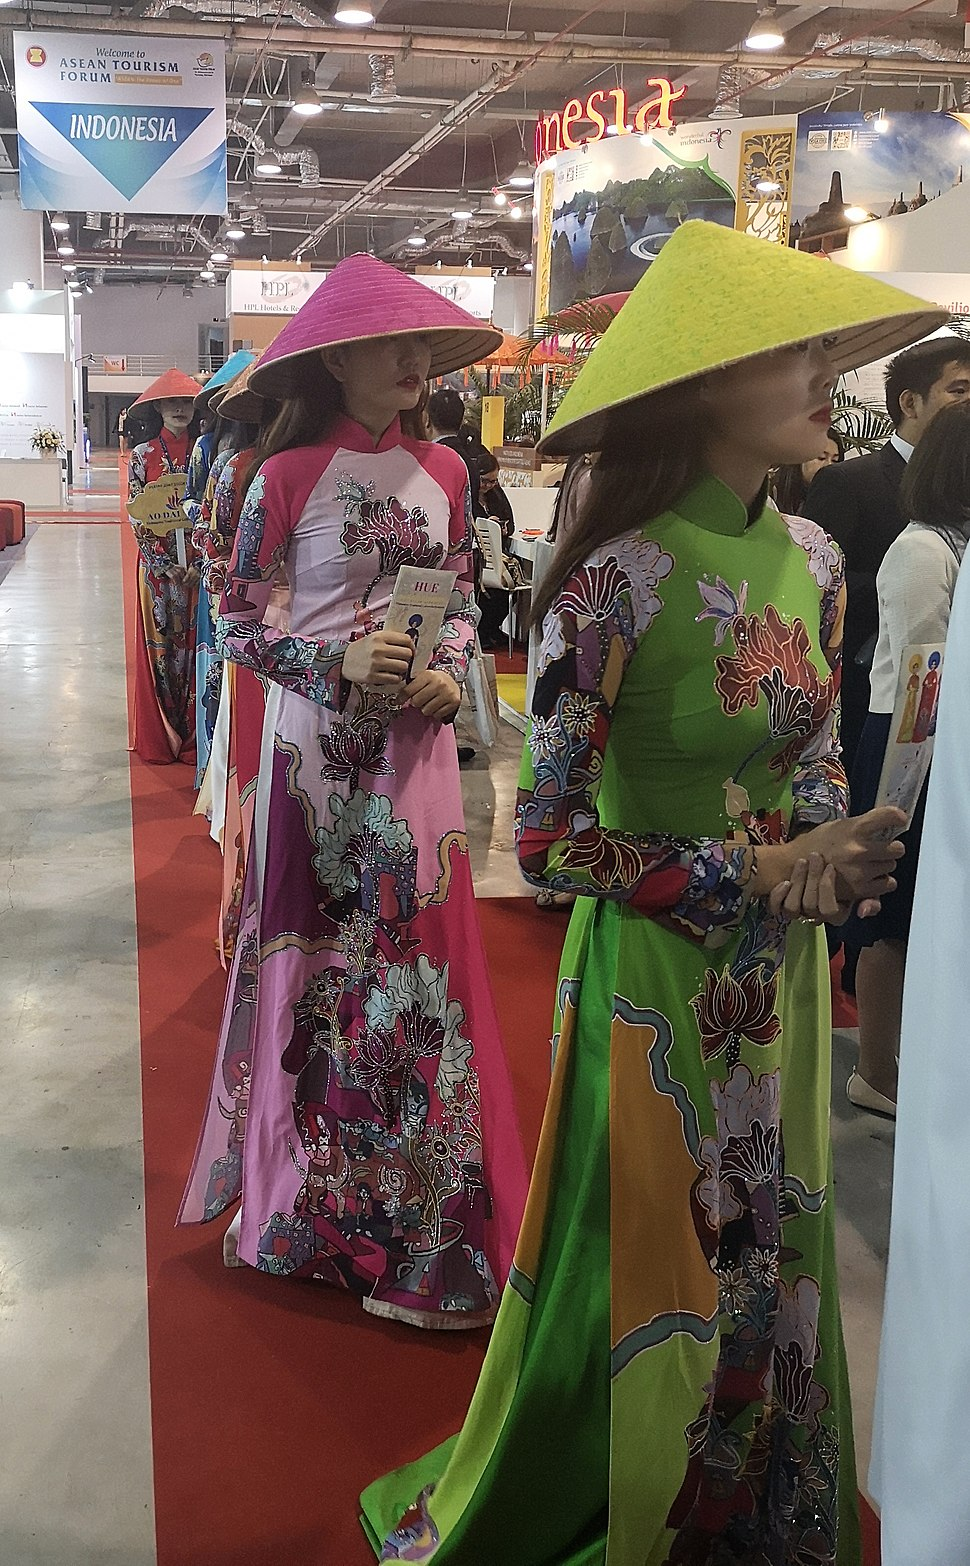 ASEAN Tourism Forum 2019 Vietnam woman cloth parade